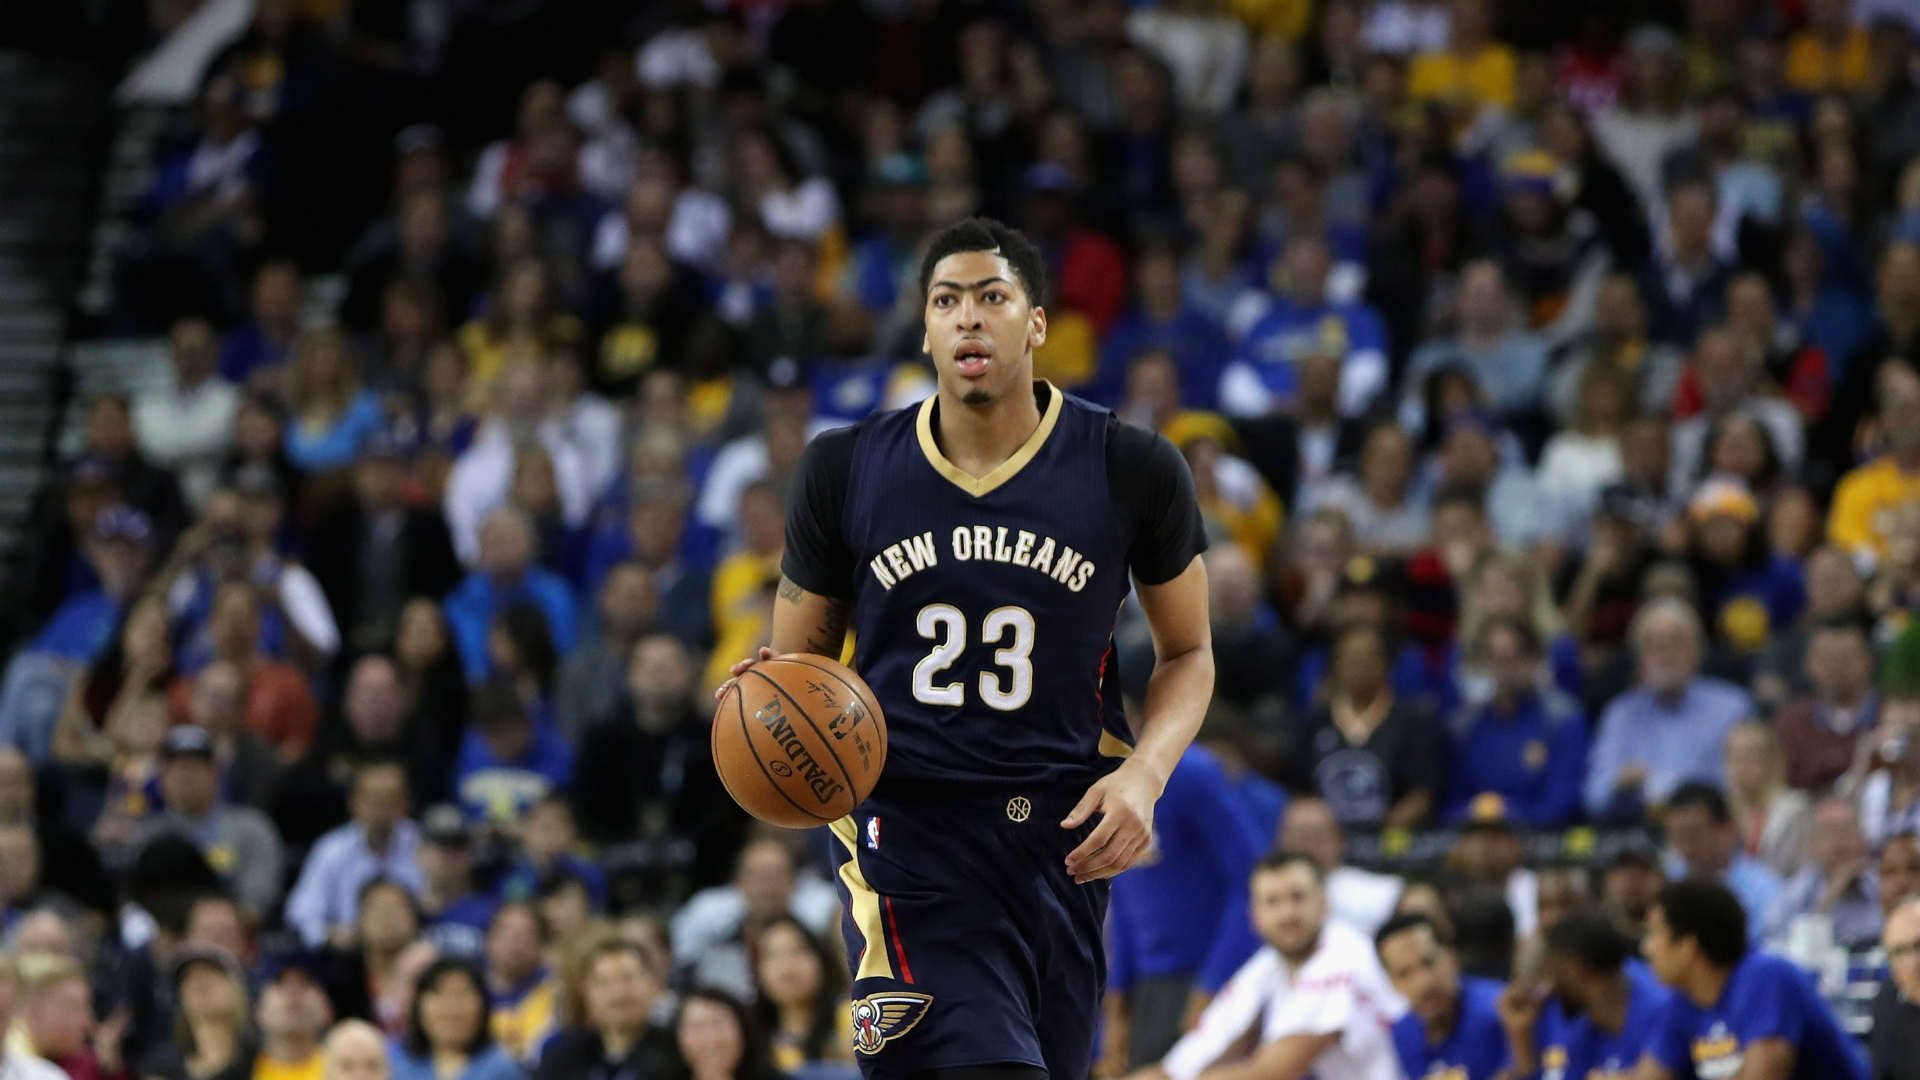 Anthony-davis-getty-ftr-062516_122qlh105yut4136iniw9ypjbs